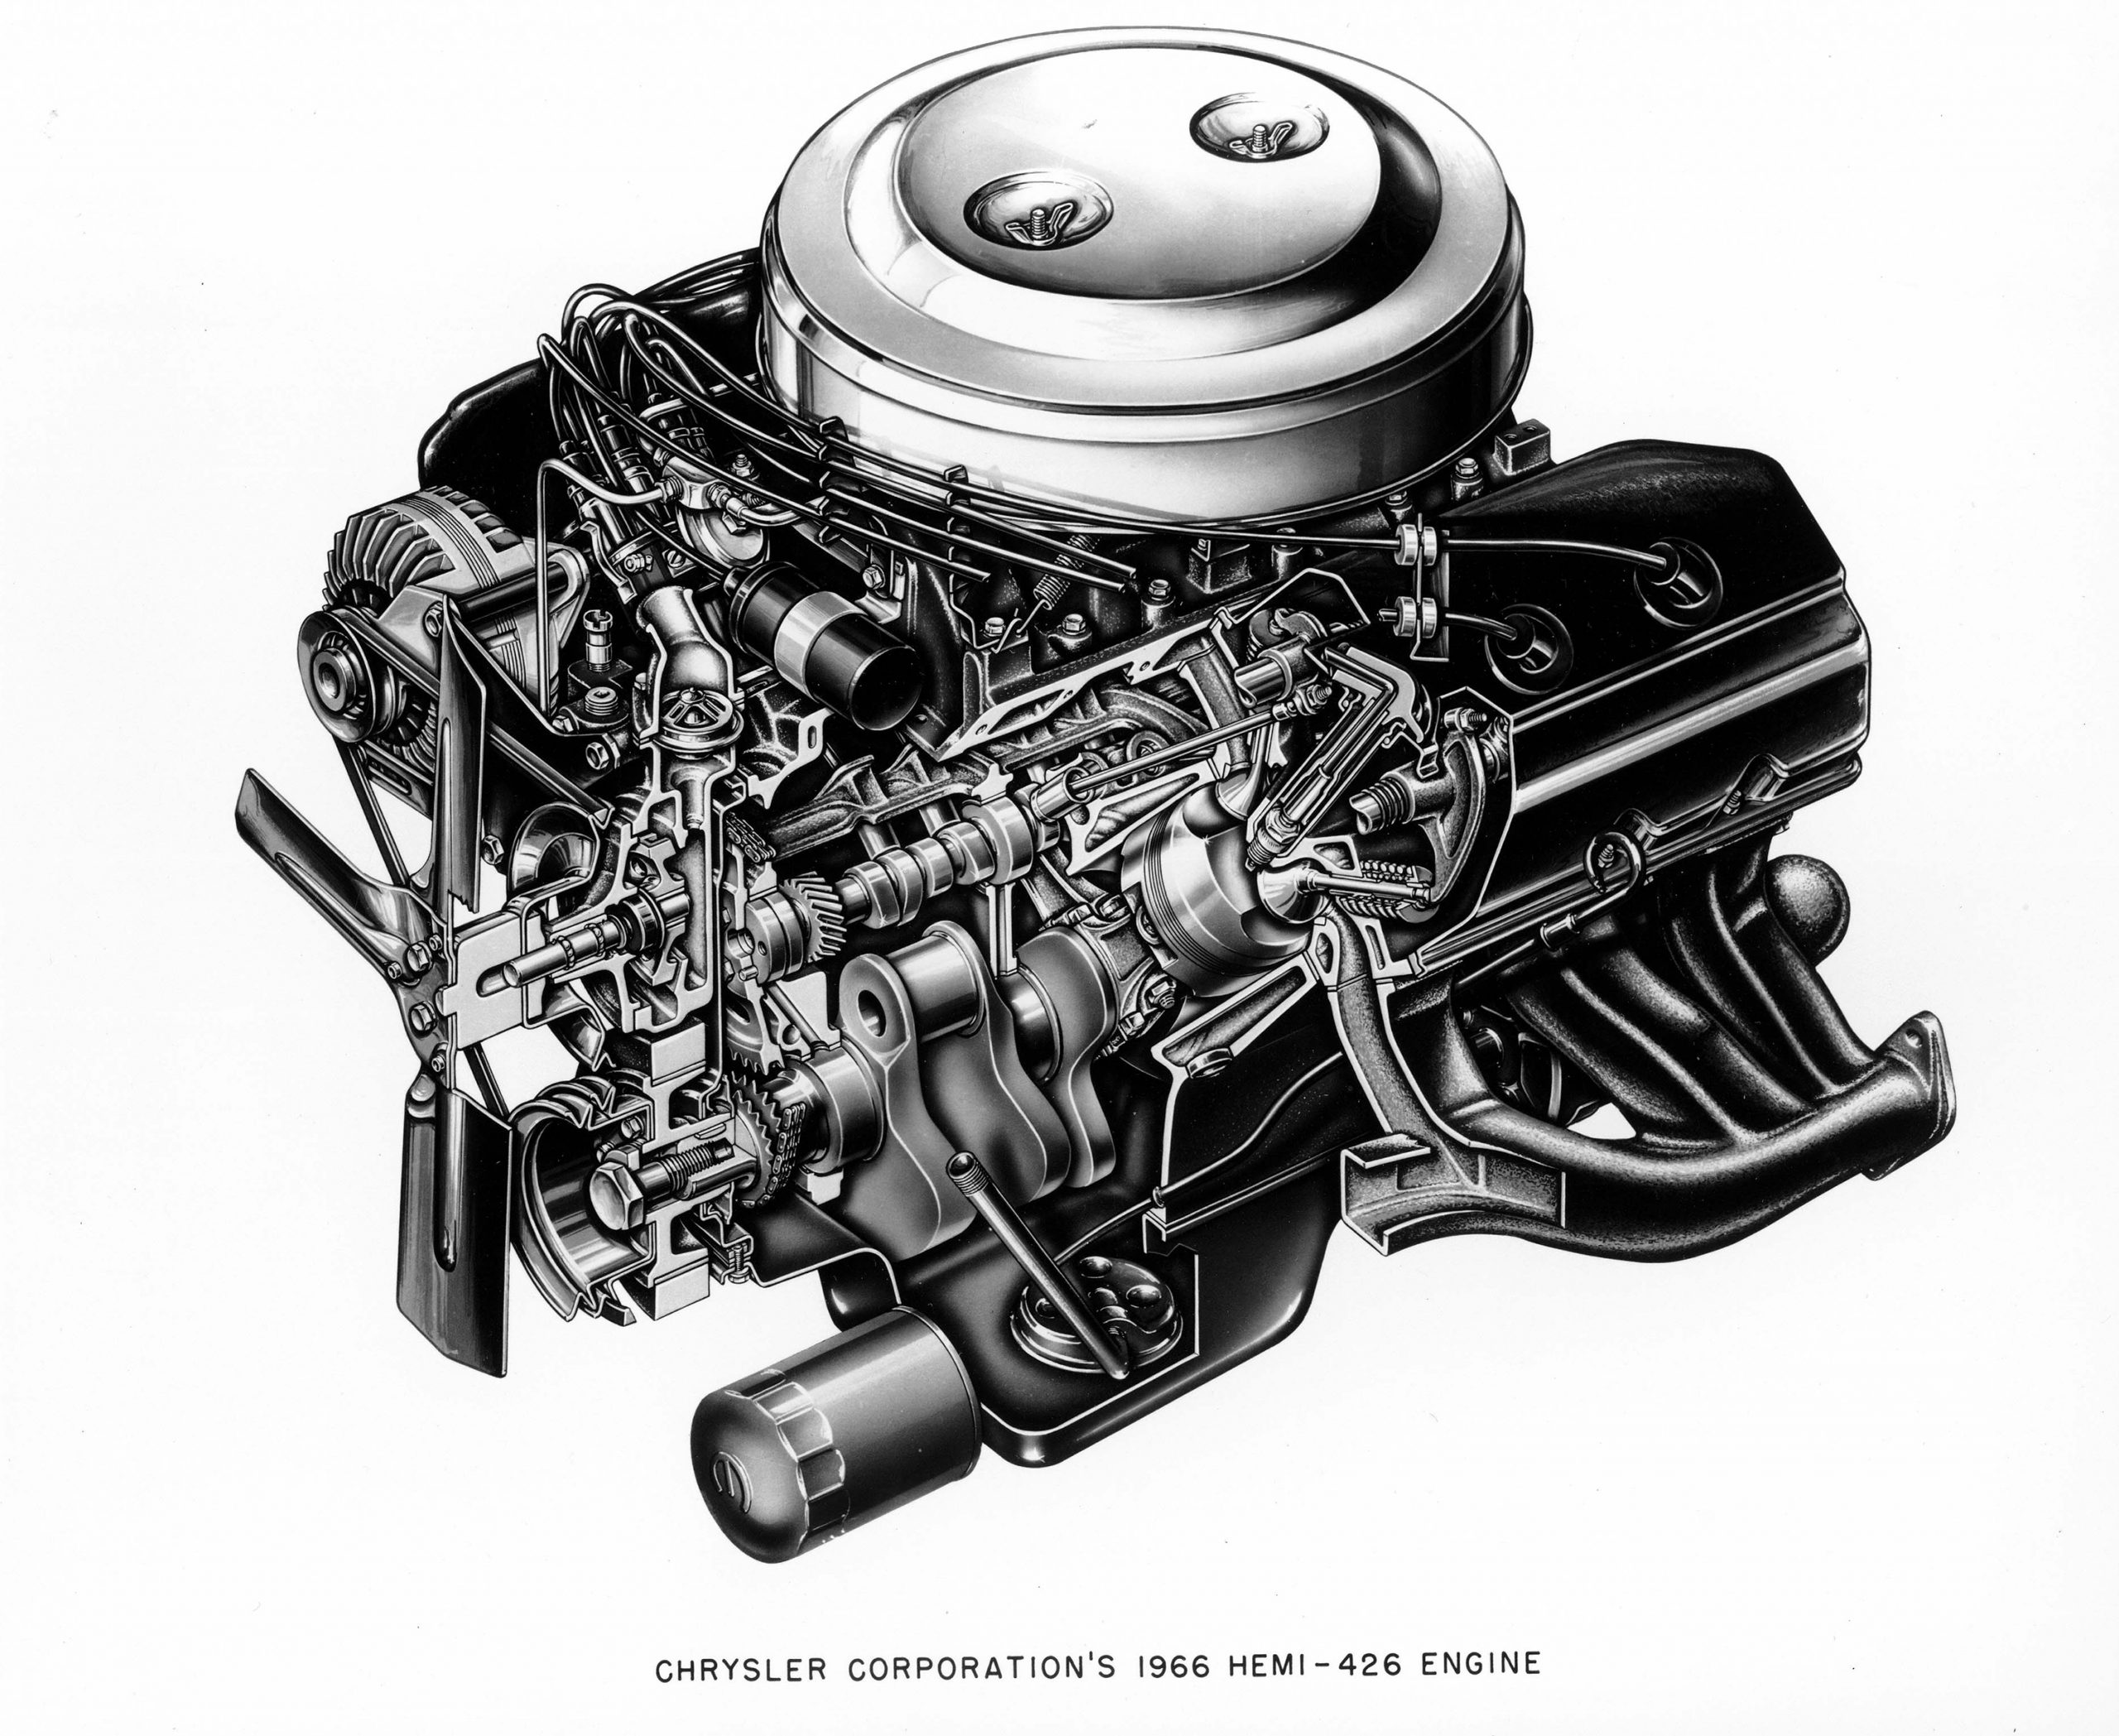 1966 Chrysler Corporation's HEMI - 426 Engine - cutaway